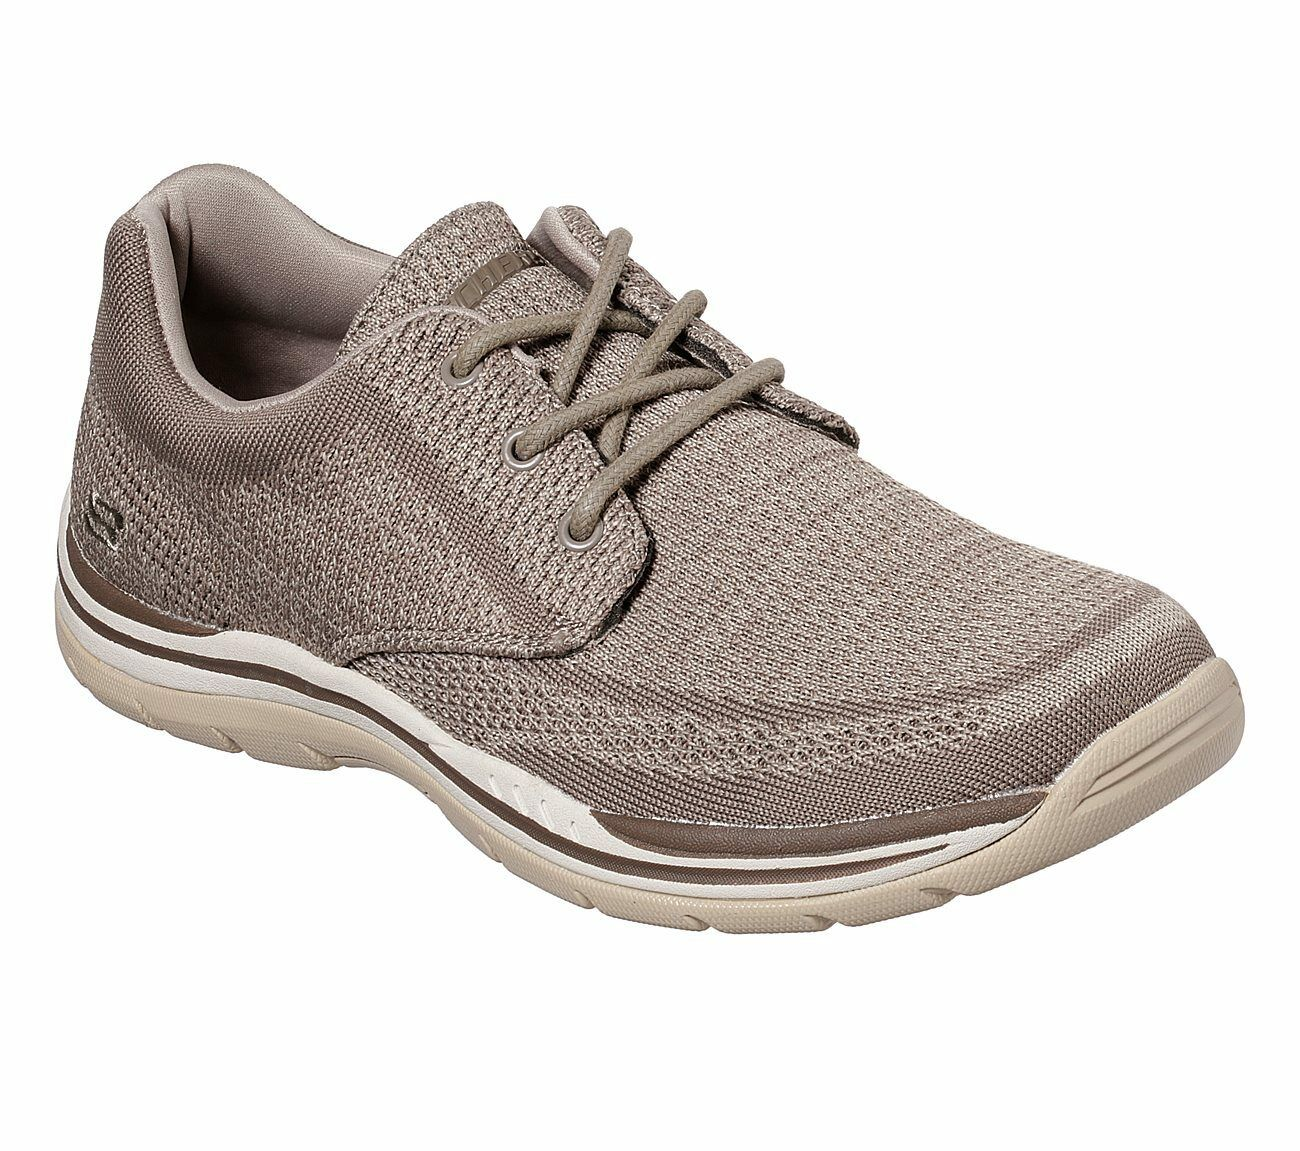 65720 Taupe Skechers shoes Comfort Men Memory Foam Casual Comfort shoes Oxford Soft Woven Knit 0a16a4